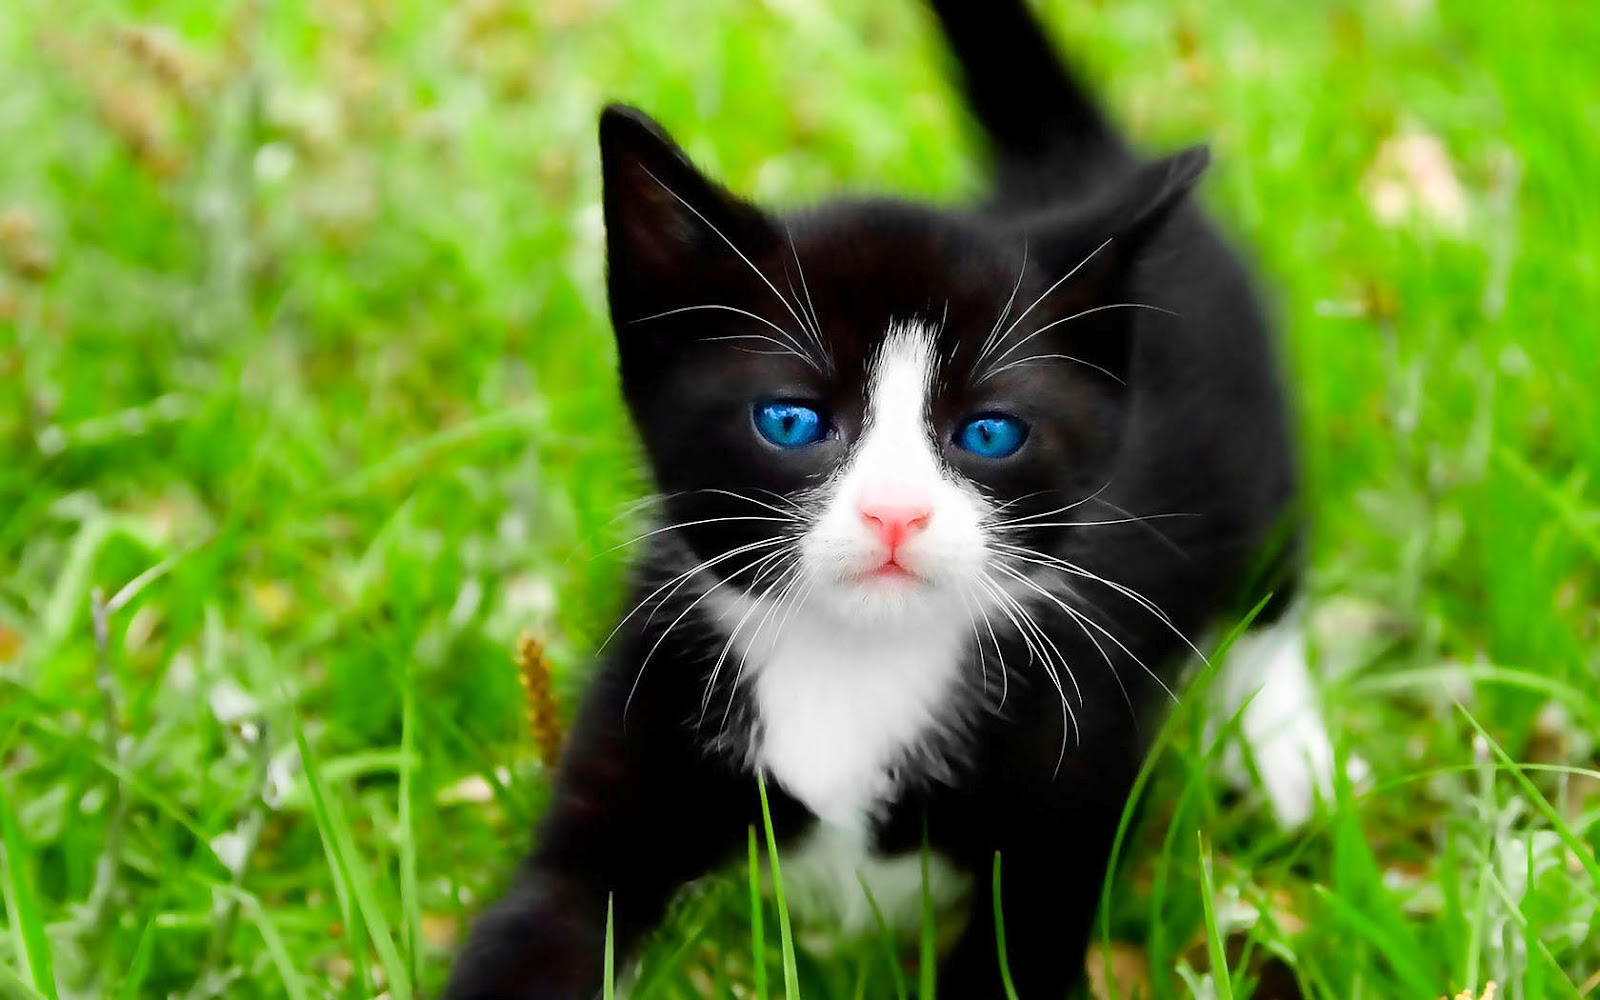 Cute Kittens Images Cute Kittens Hd Wallpaper And Background Photos